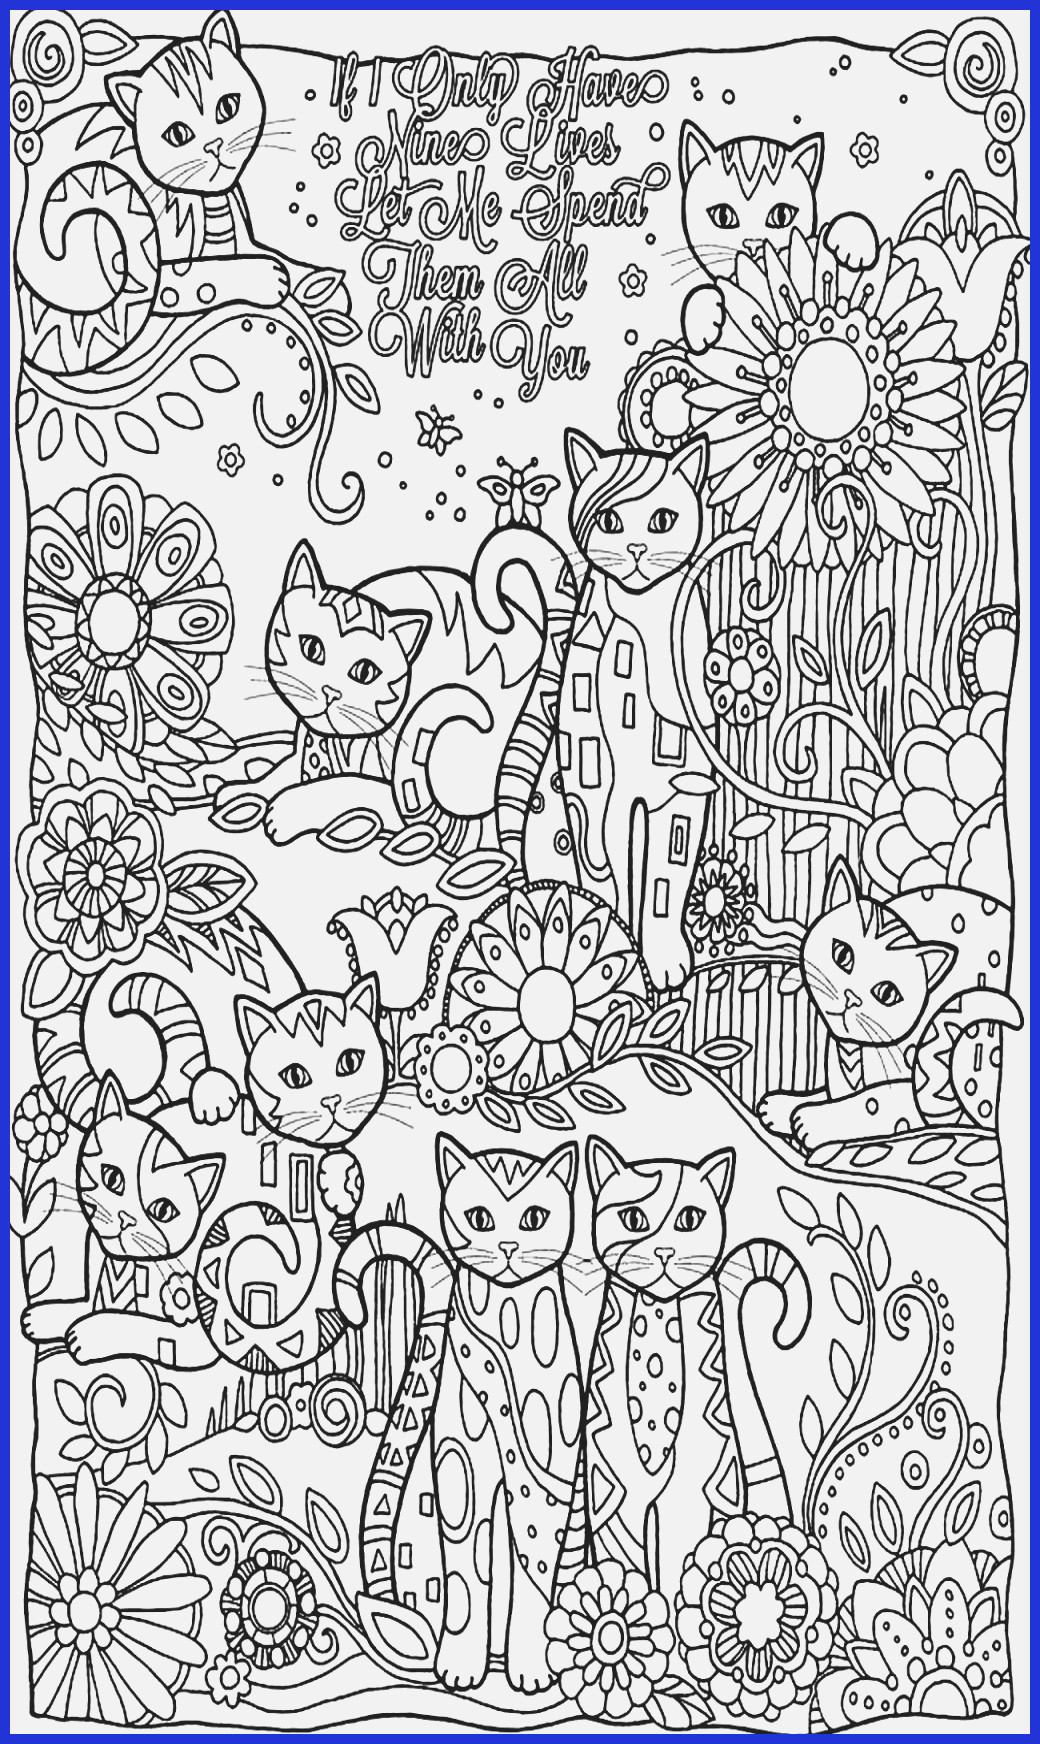 image about Descendants 2 Coloring Pages Printable titled 24 Descendants 2 Coloring Web pages Selection - Coloring Sheets